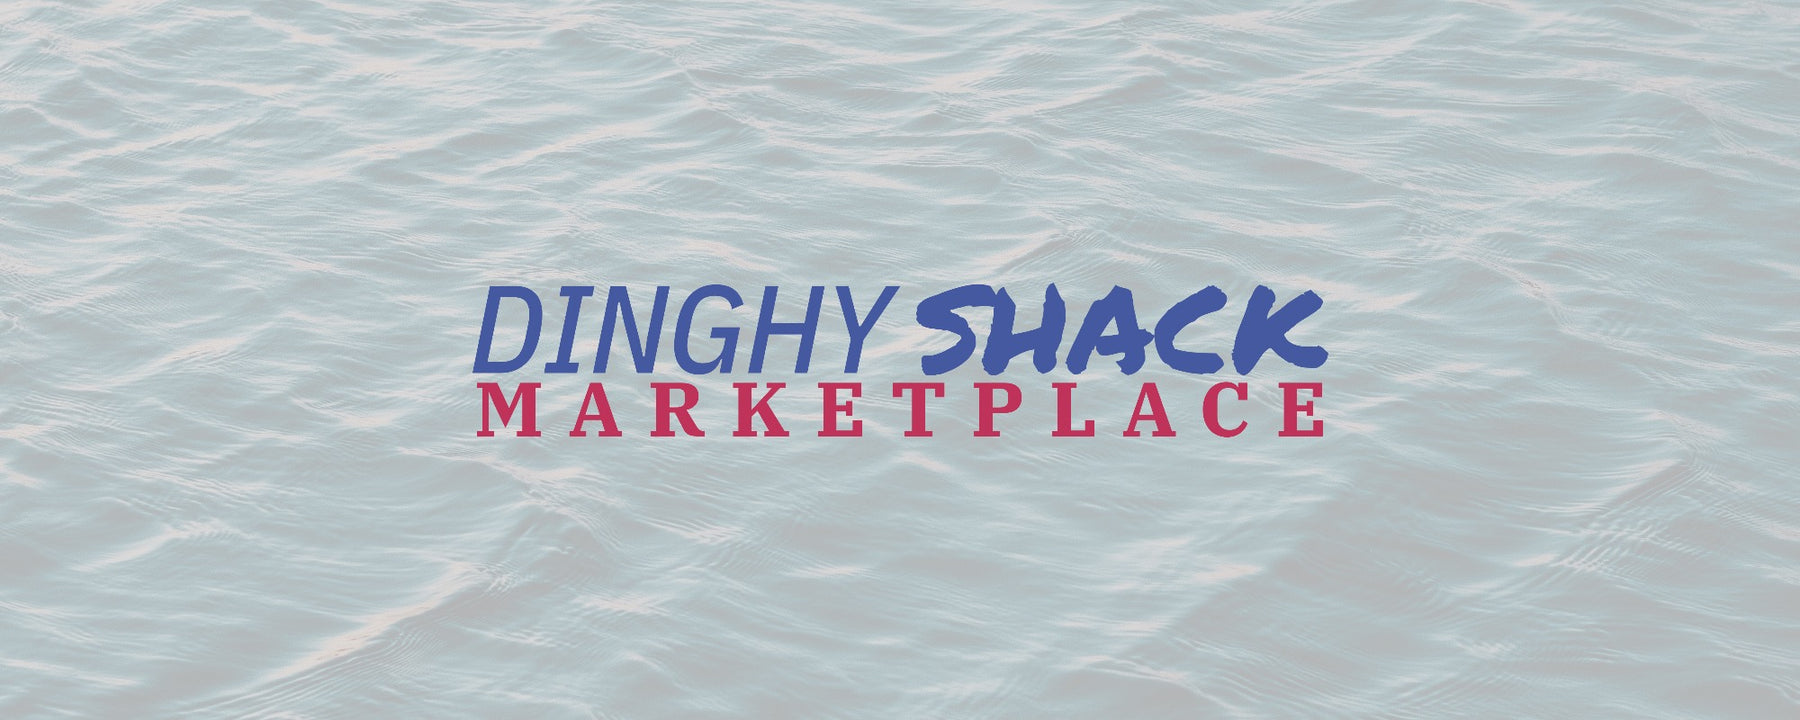 New Dinghy Shack Marketplace Launched!